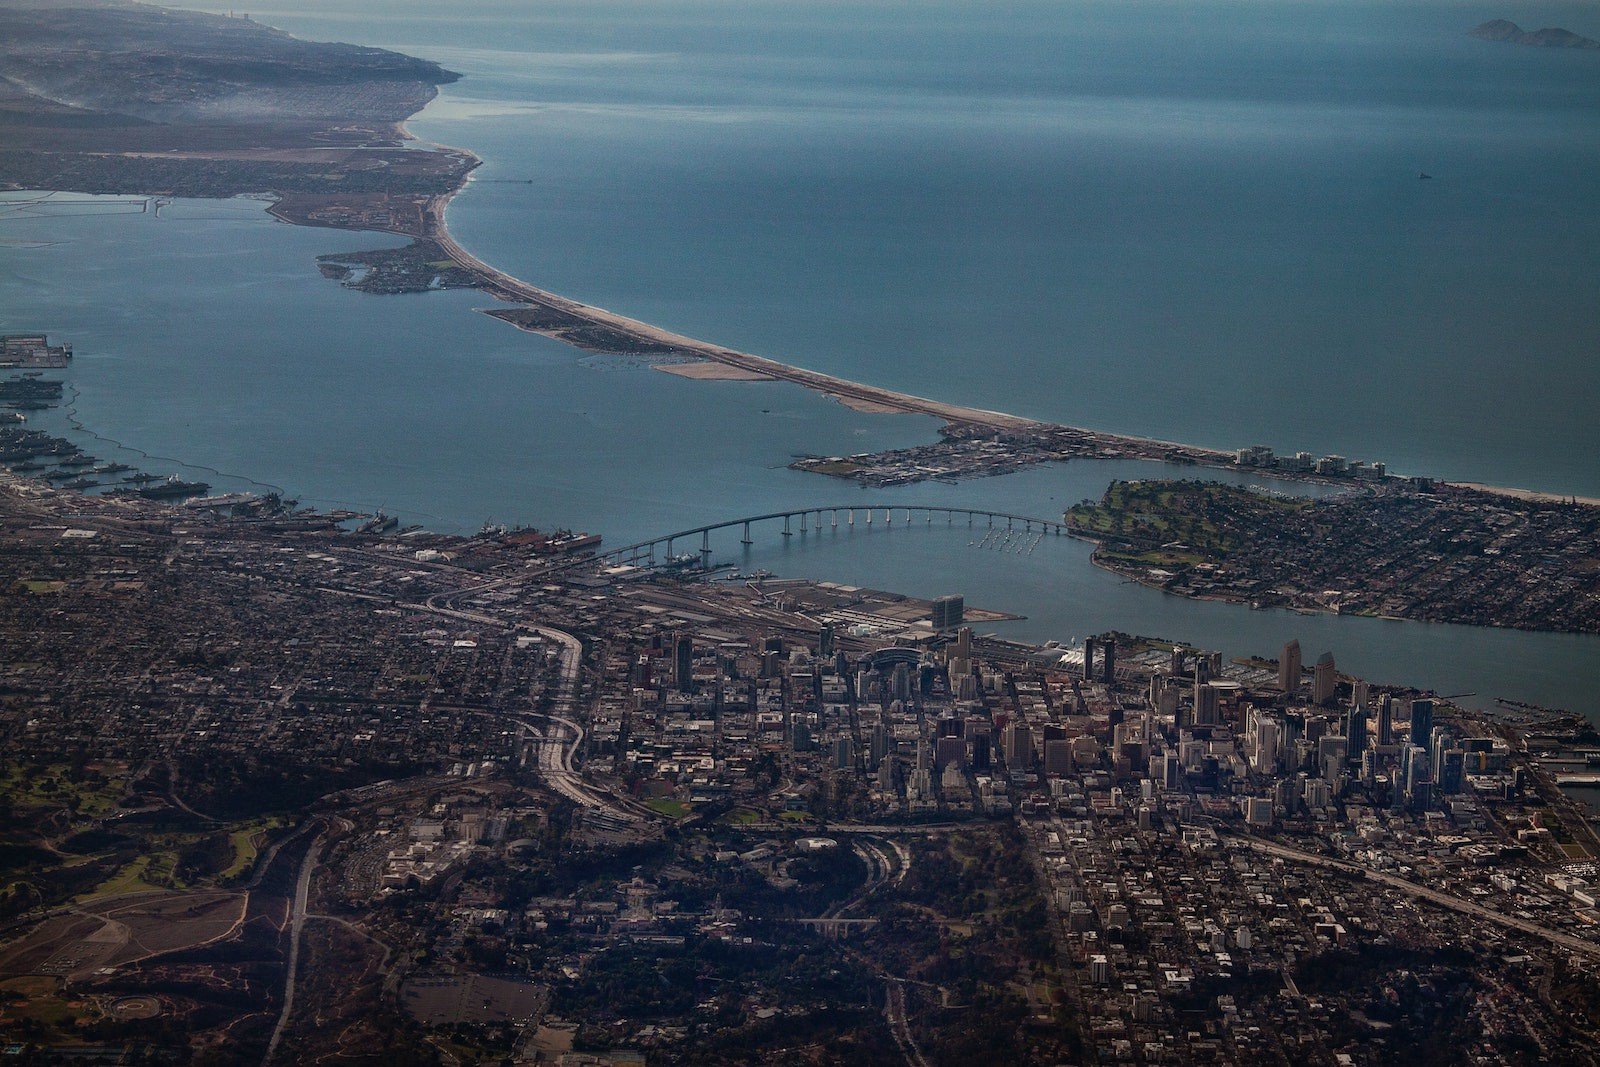 Aerial image of San Diego companies and the local infrastructure